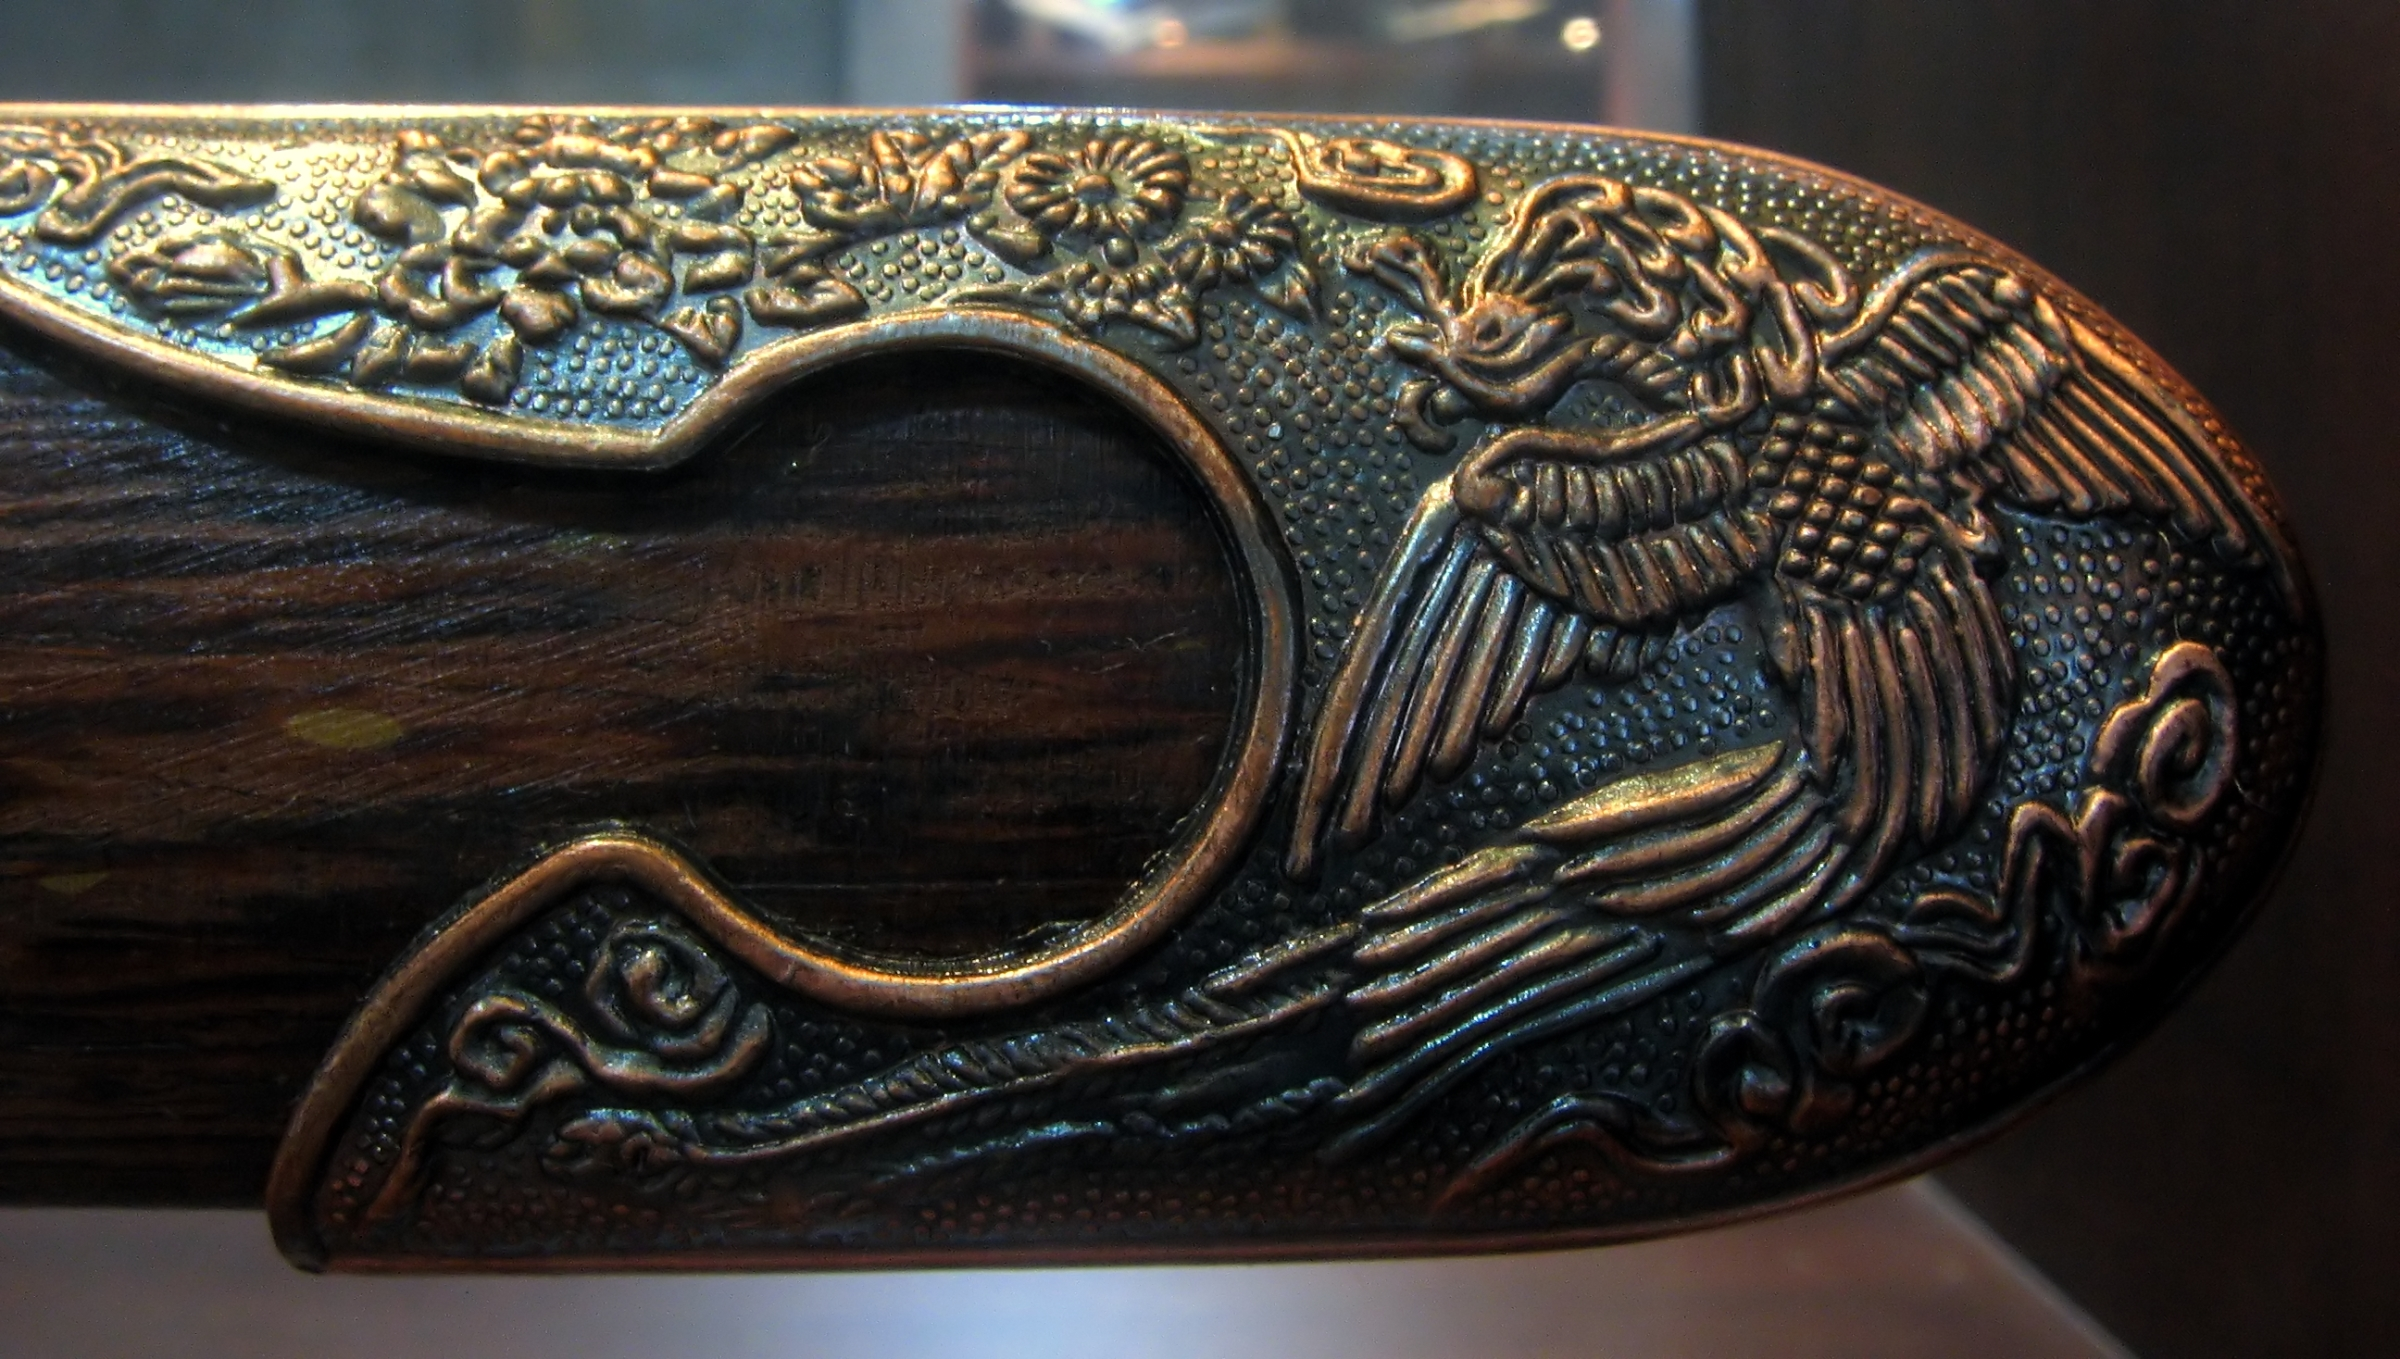 Decorated sheath of a sword photo